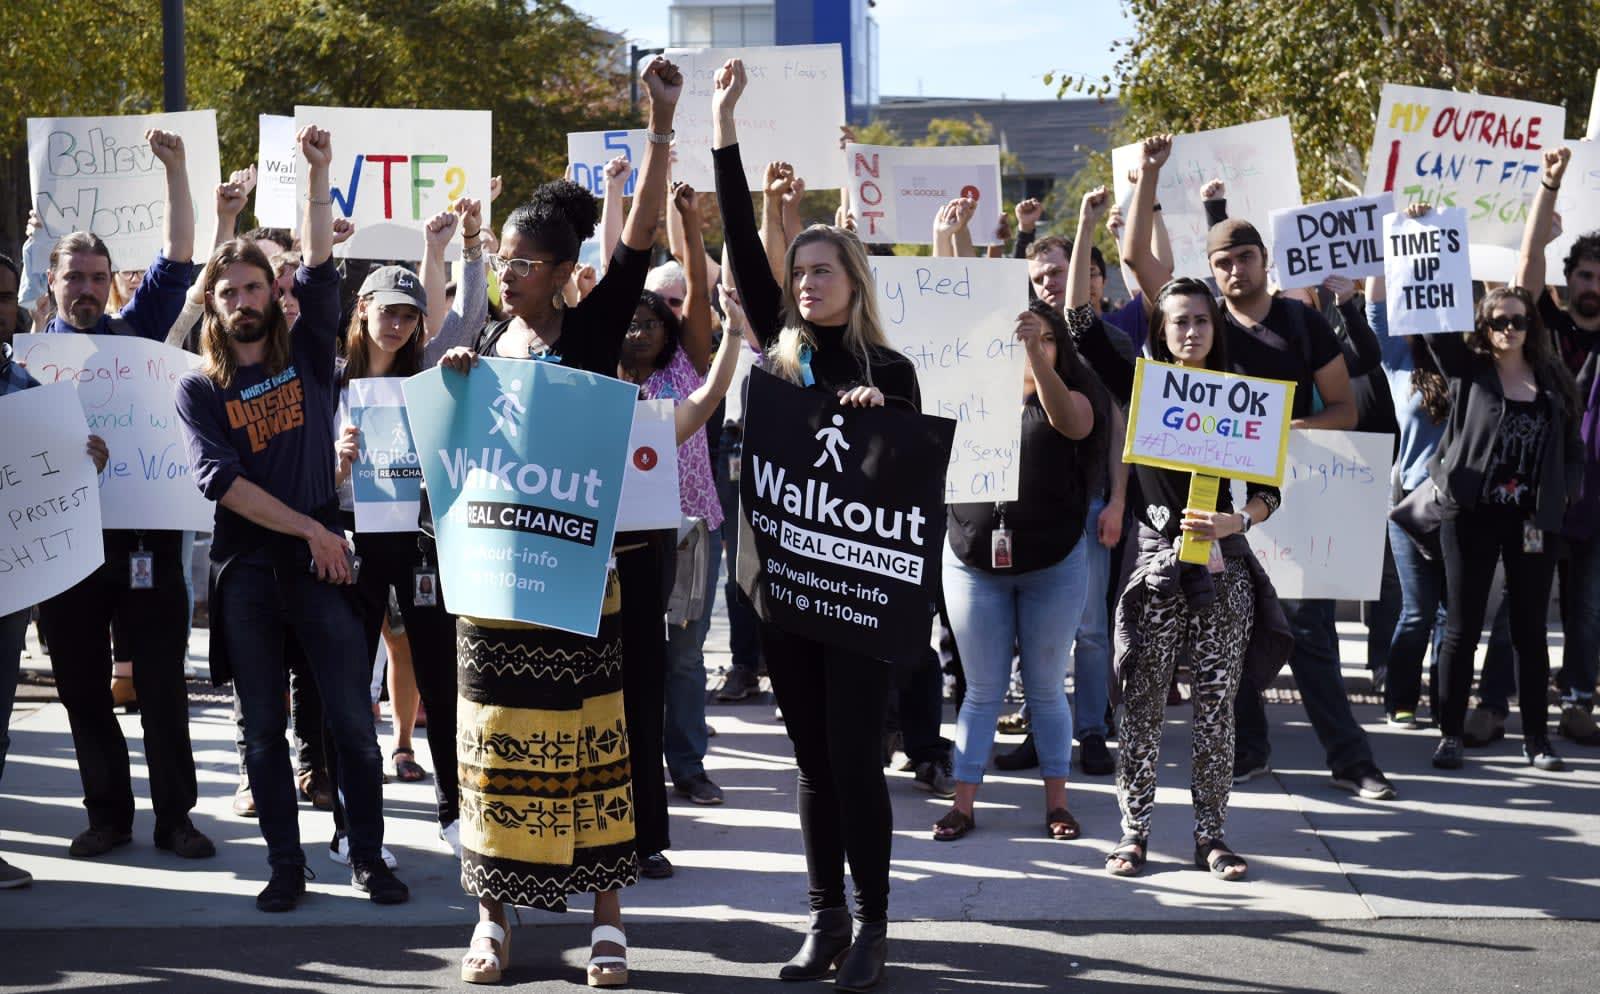 Google Walkout organizers: changes are a start, but not enough